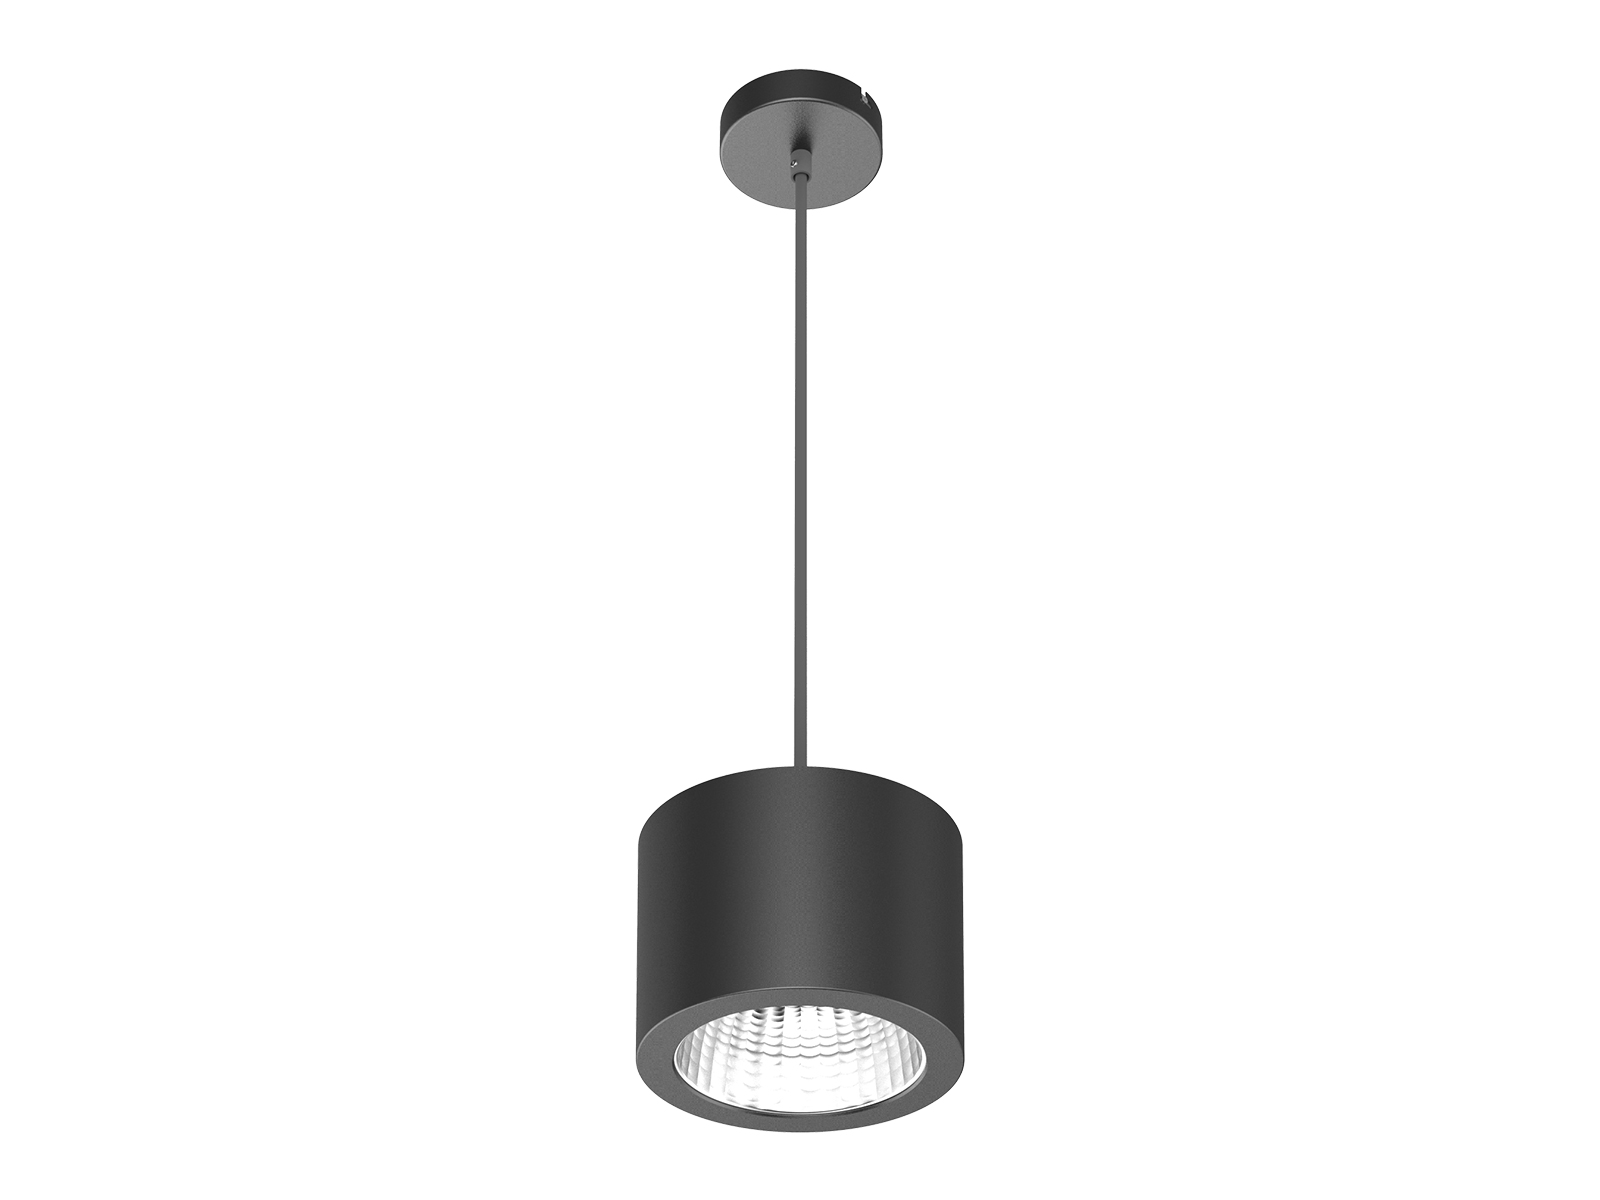 PD05 1 CCT Changeable LED Pendant Downlight